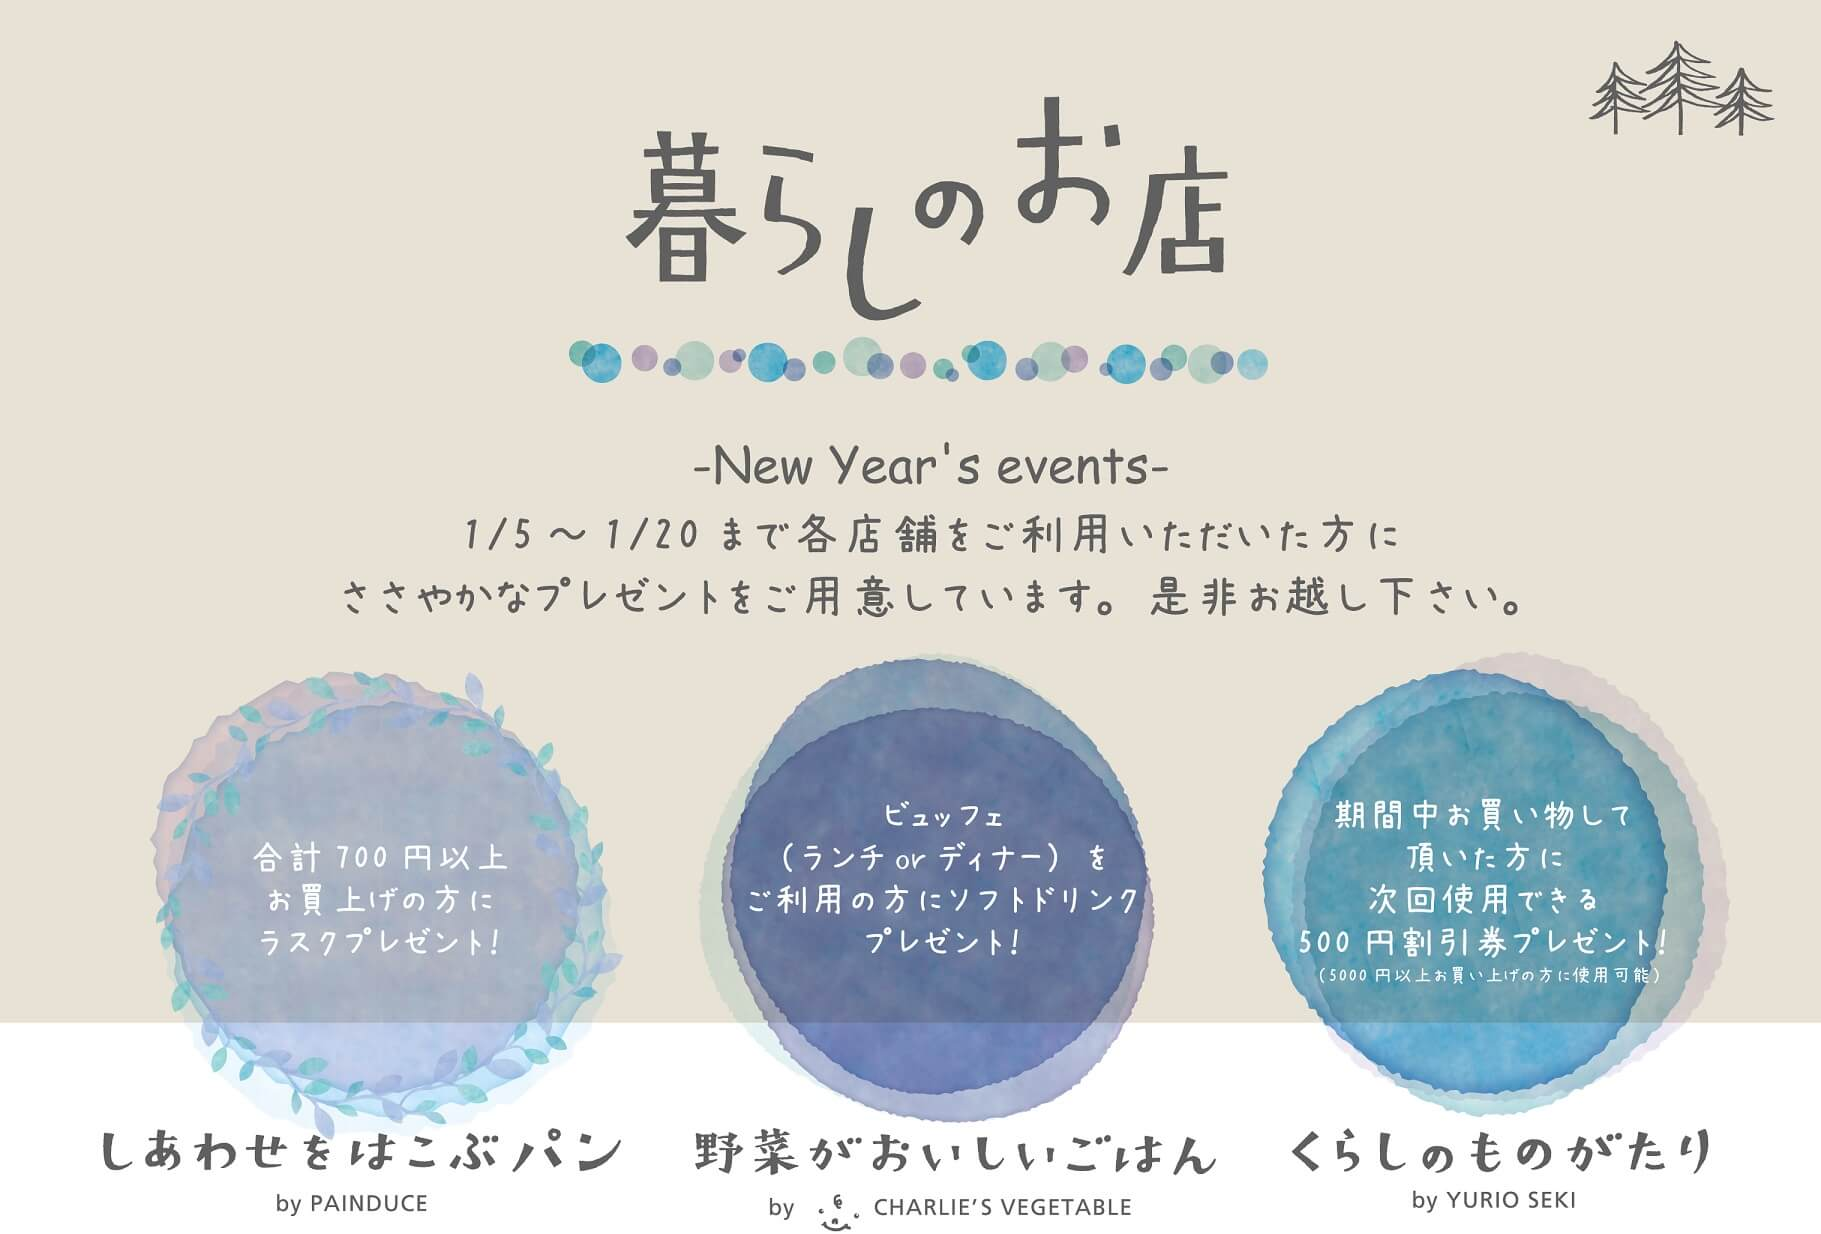 New Year's events